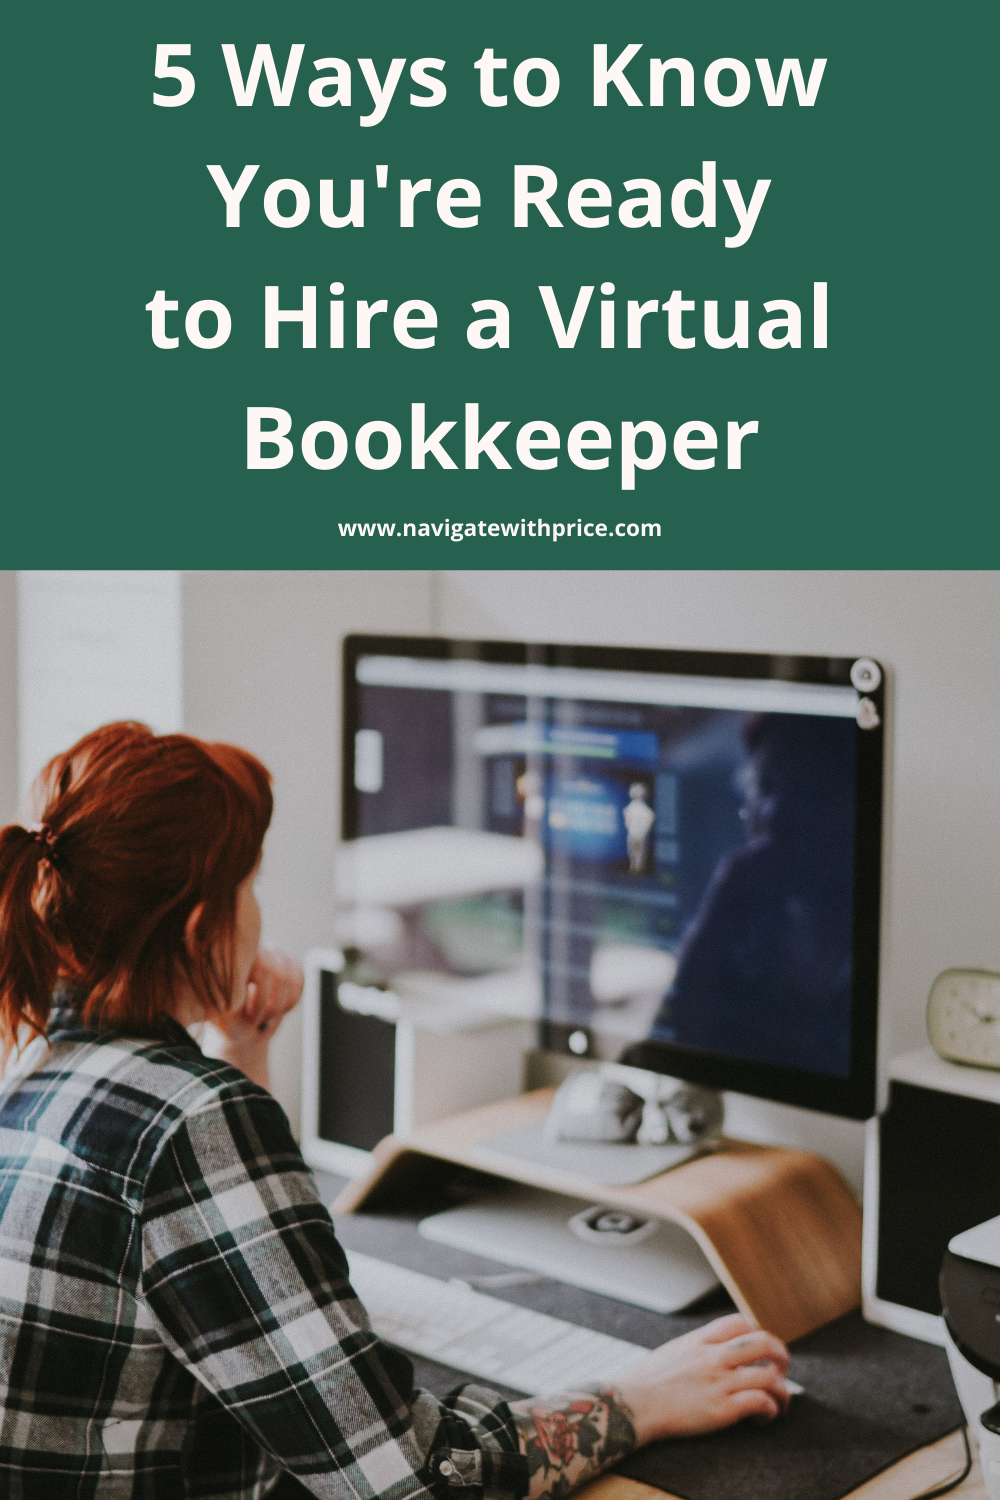 5 Ways to Know You're Ready to Hire a Virtual Bookkeeper